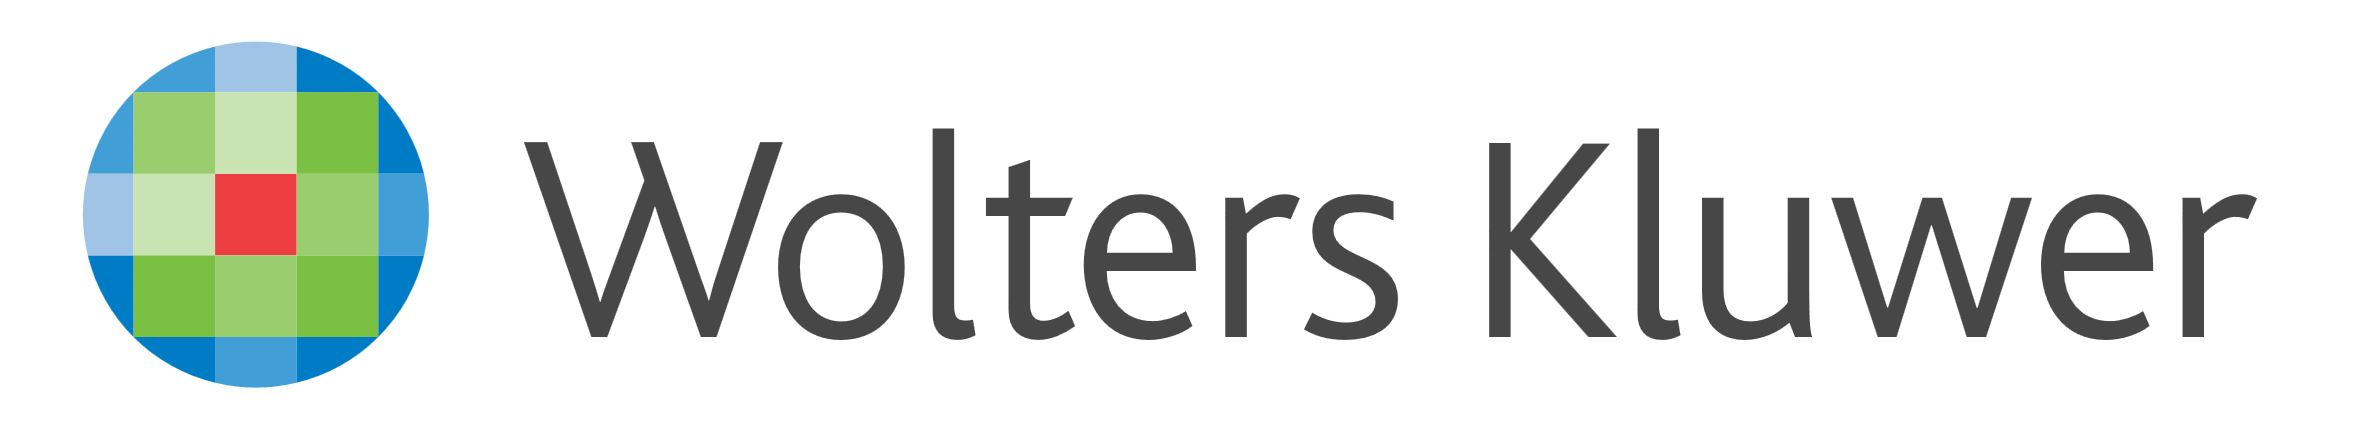 Wolters Kluwer - Logos Download